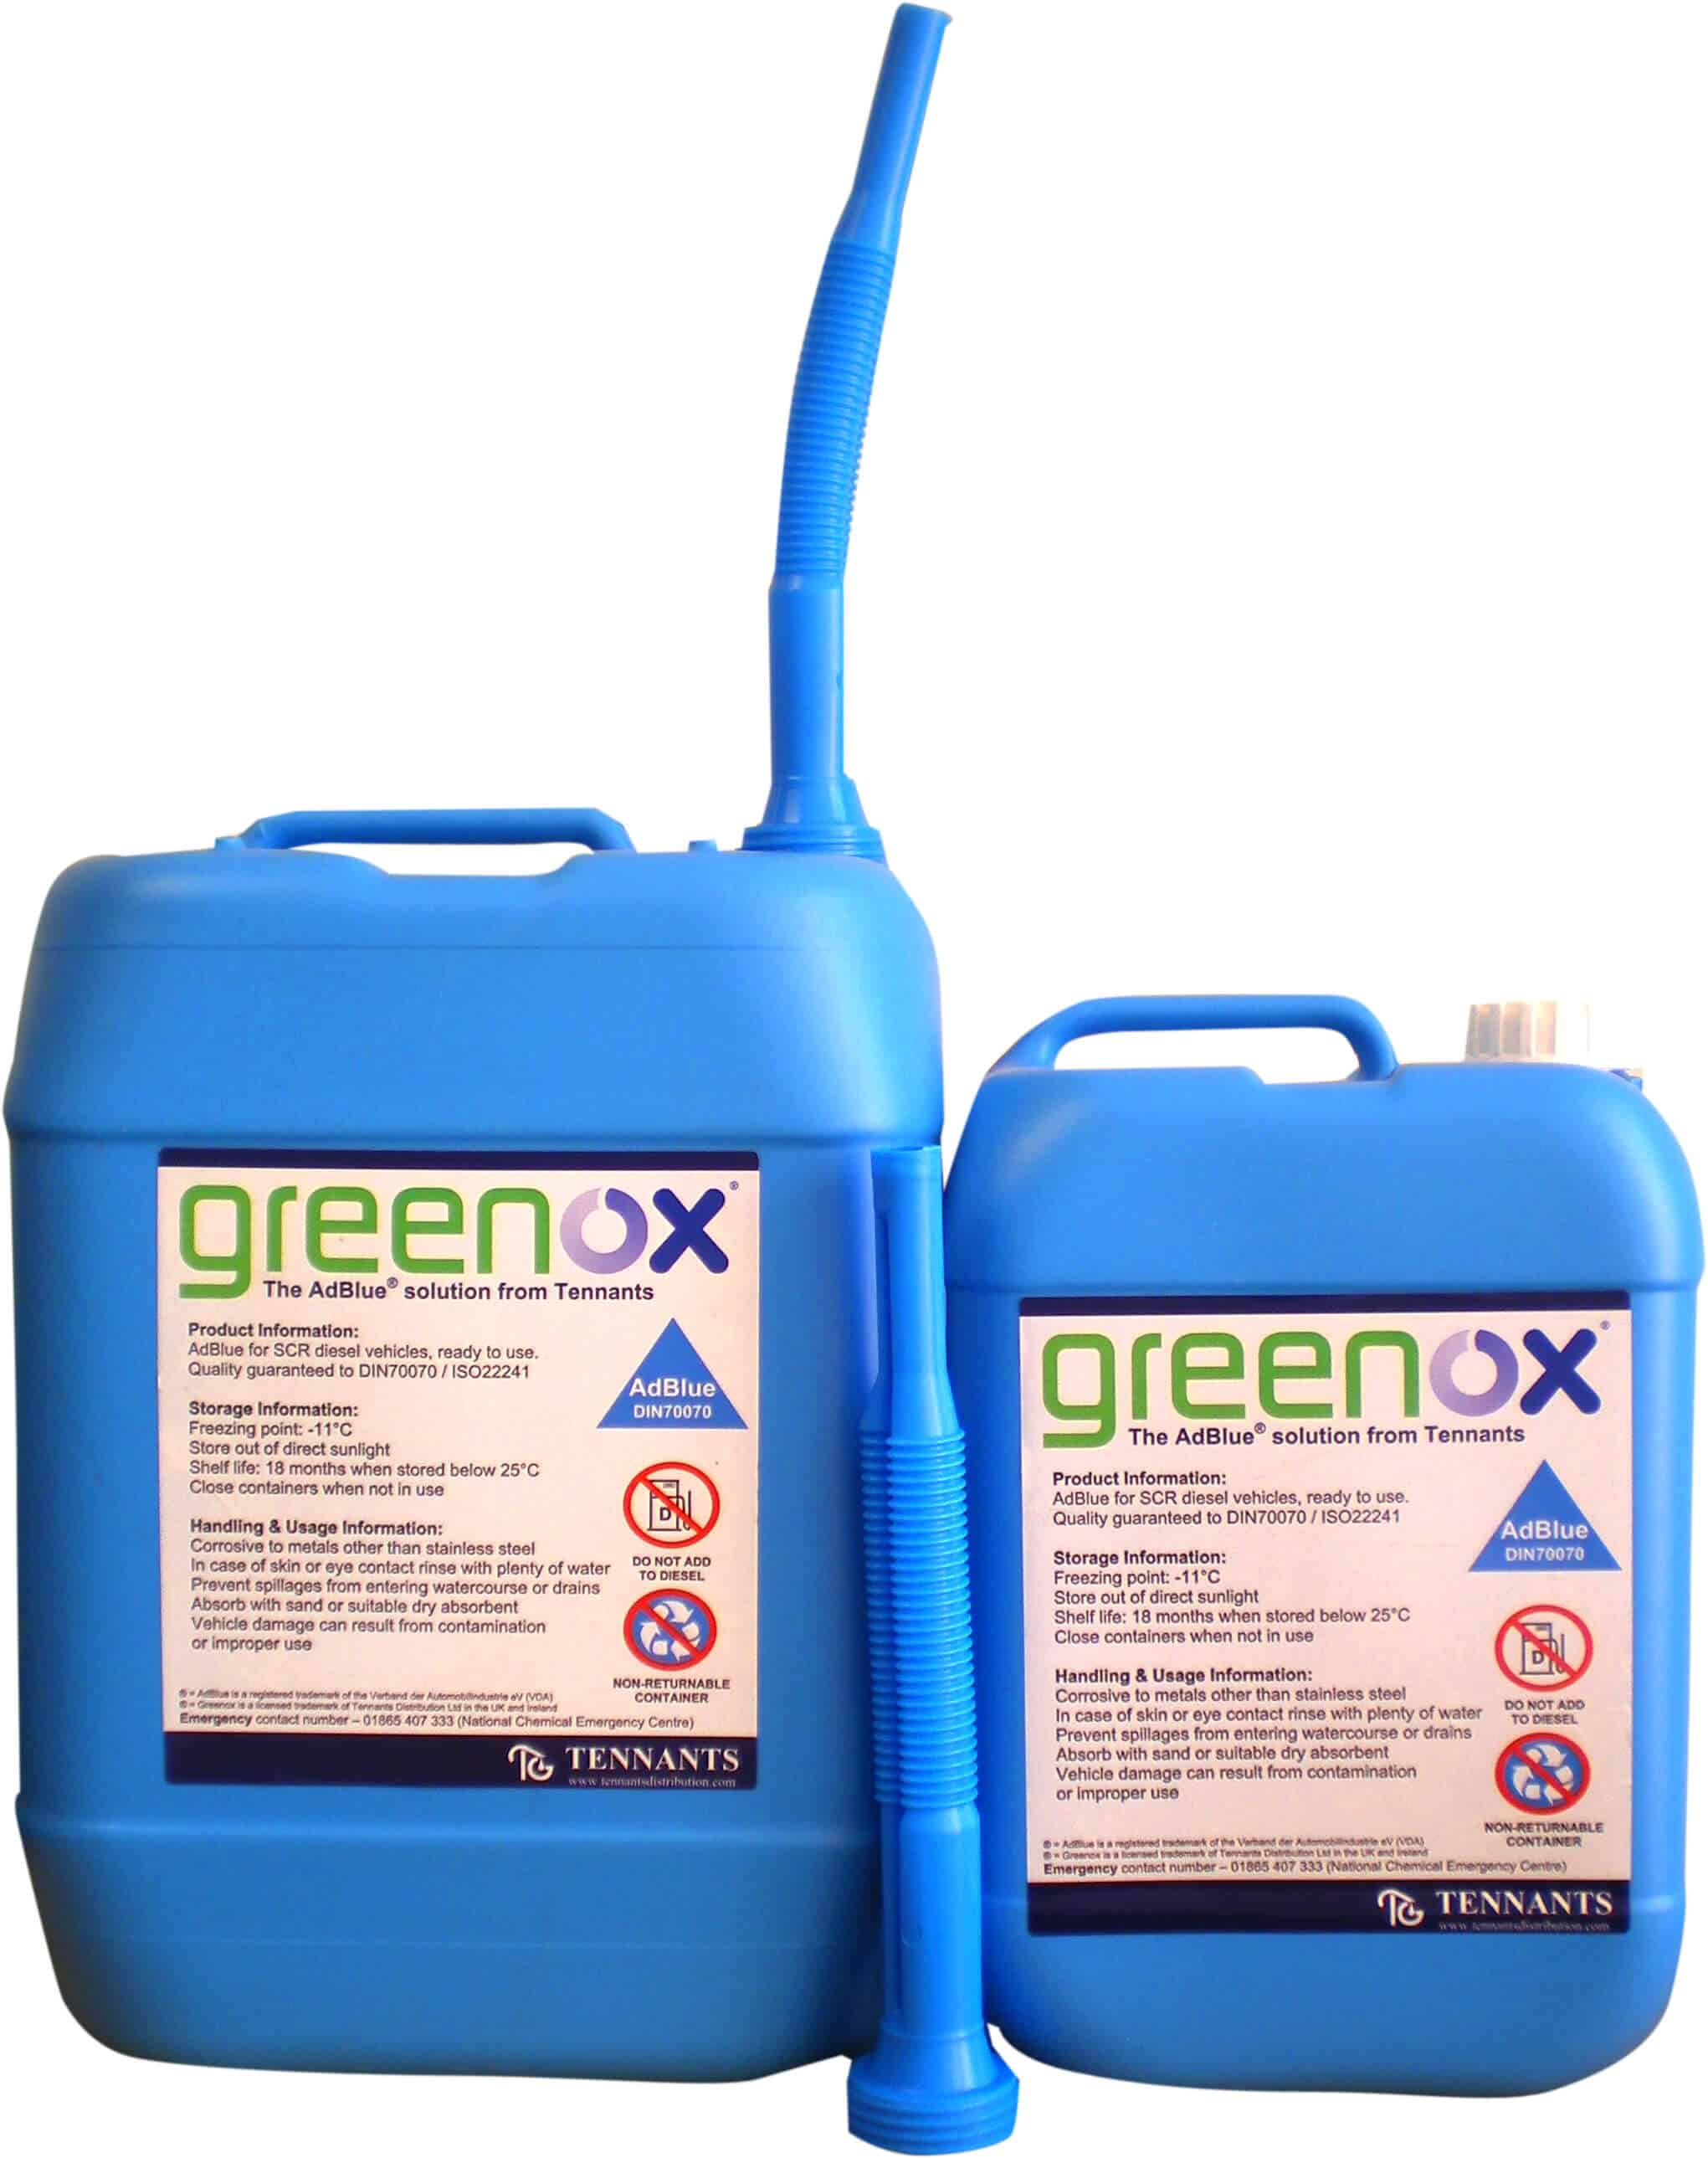 Where To Buy Adblue >> Adblue Diesel Additive Official Uk Distributor Cooke Fuels